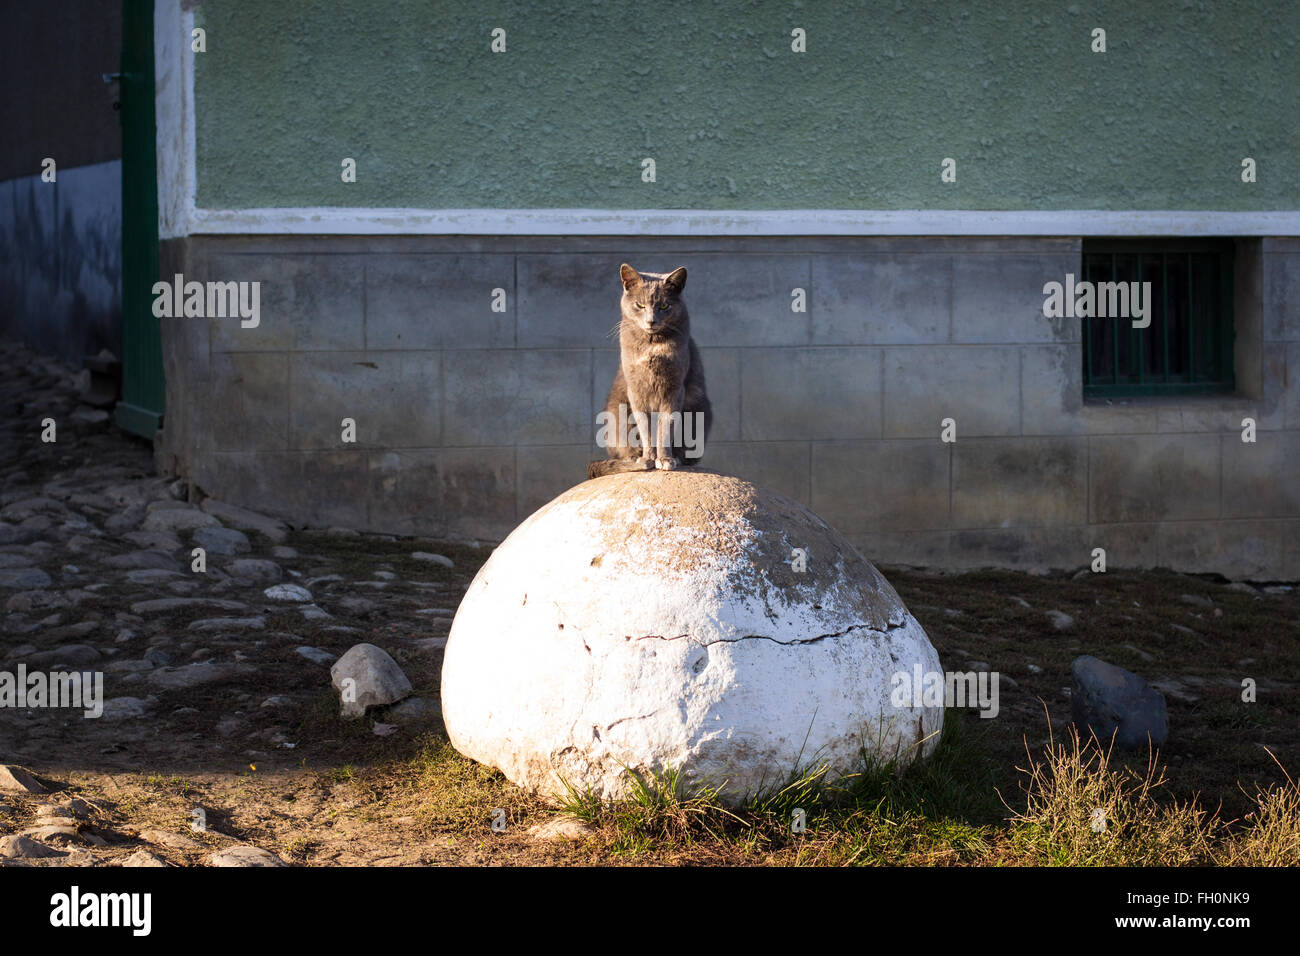 Mean, tough looking cat sits on big rock in front of house - Stock Image